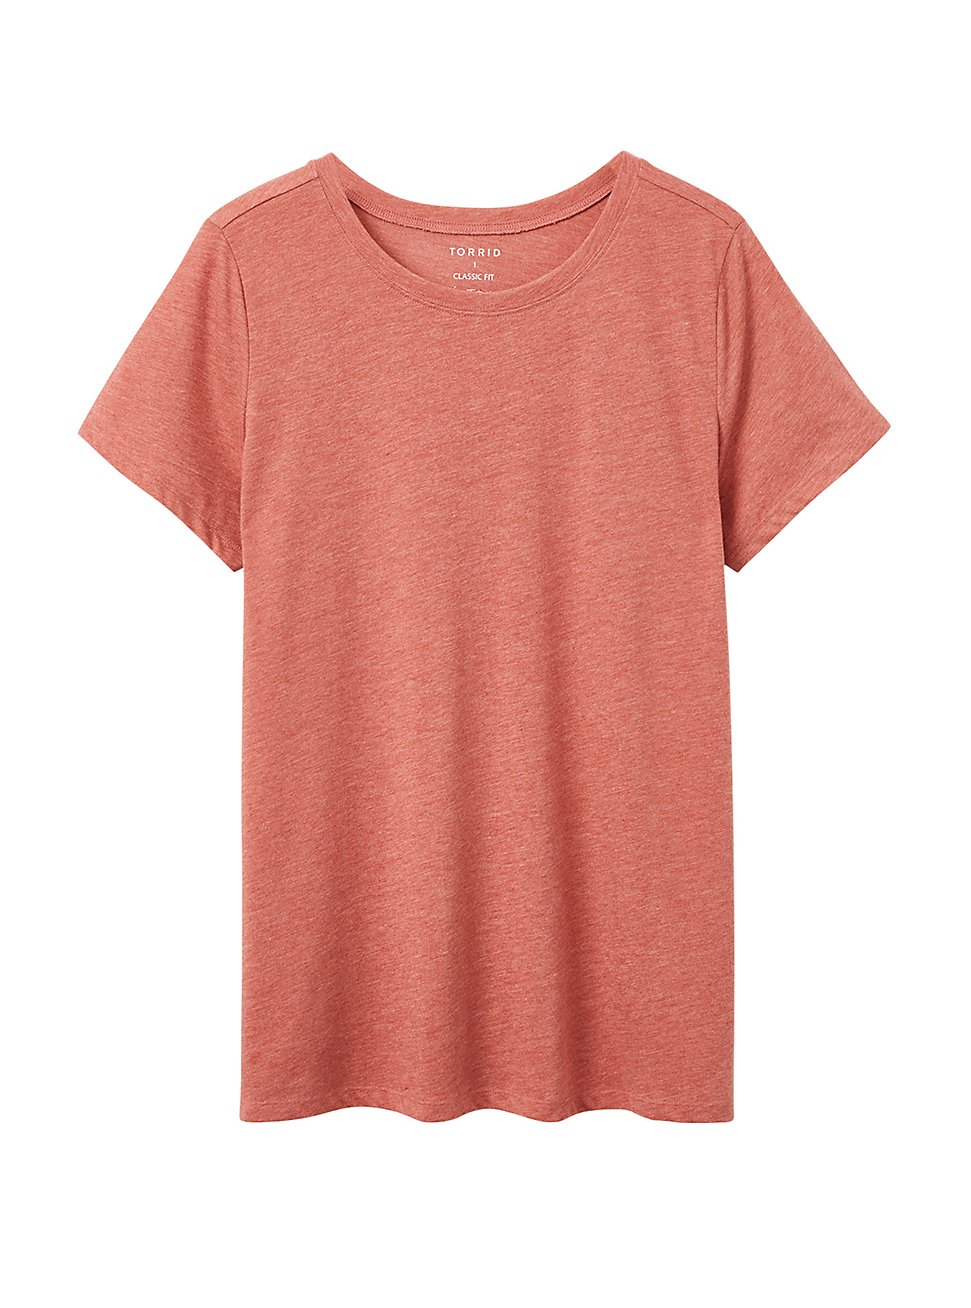 Plus Size Everyday Tee - Signature Jersey Red, BROWN, hi-res